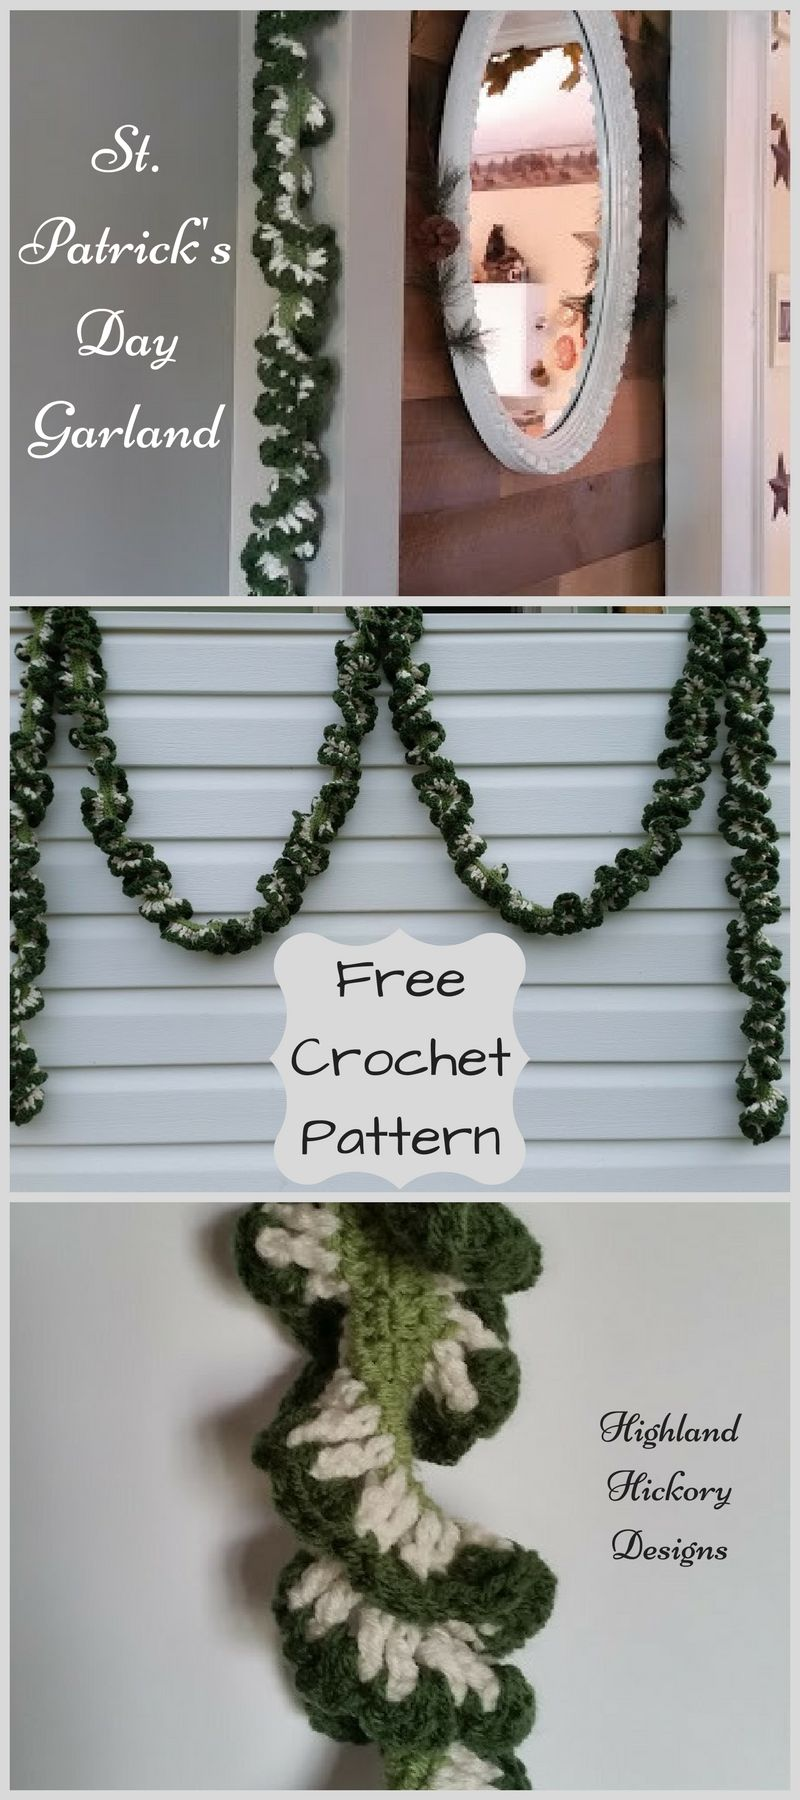 Holiday Garlands | Free pattern, Garlands and Crochet